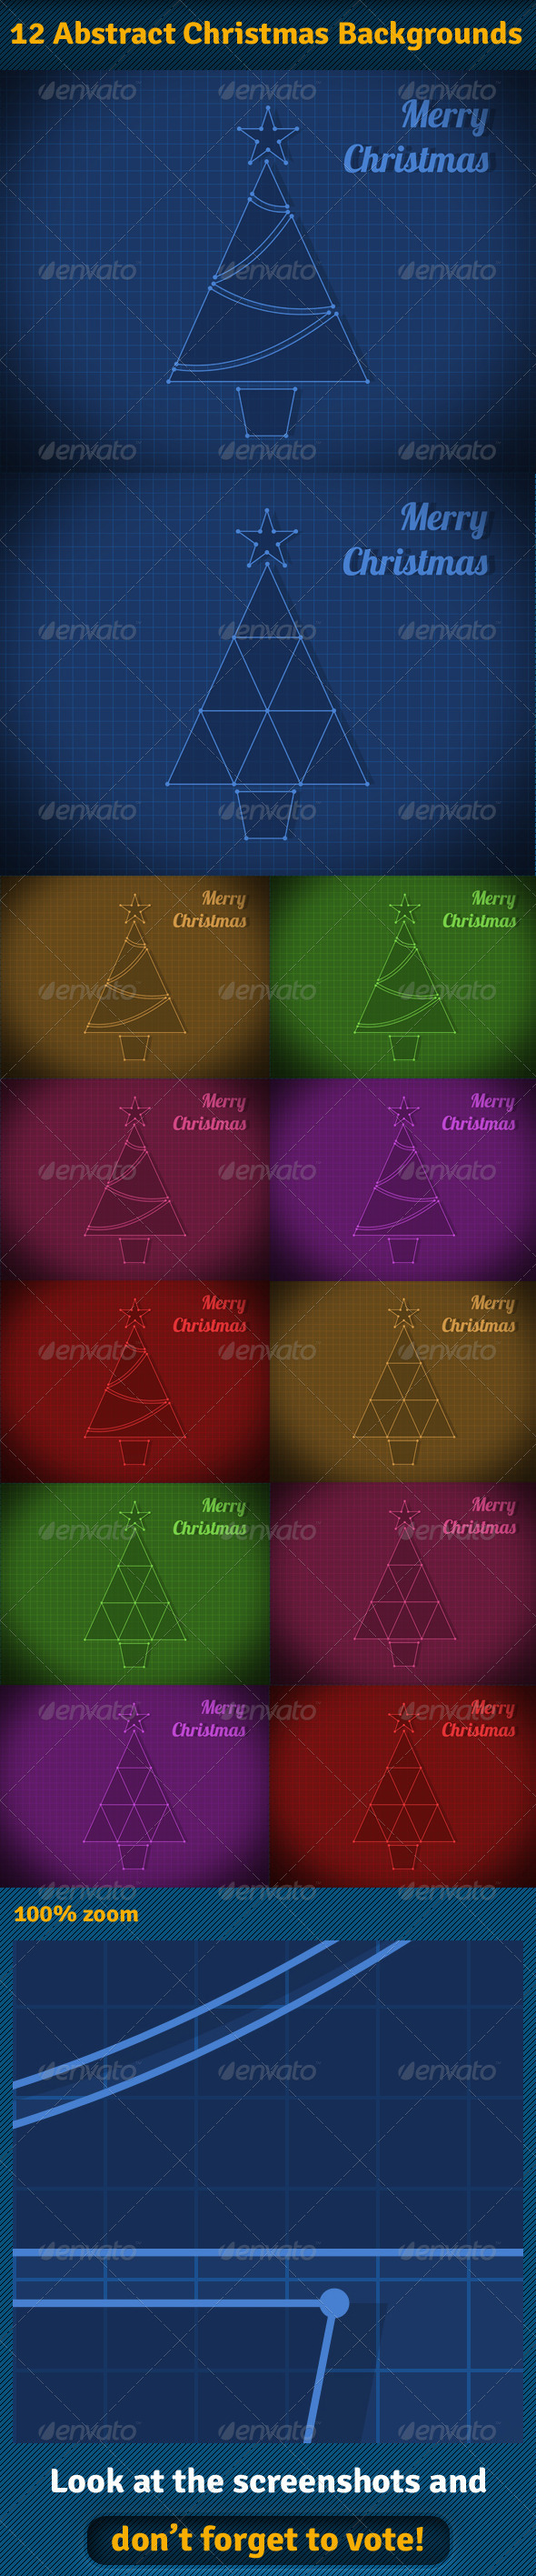 GraphicRiver Abstract Christmas Backgrounds 6179270